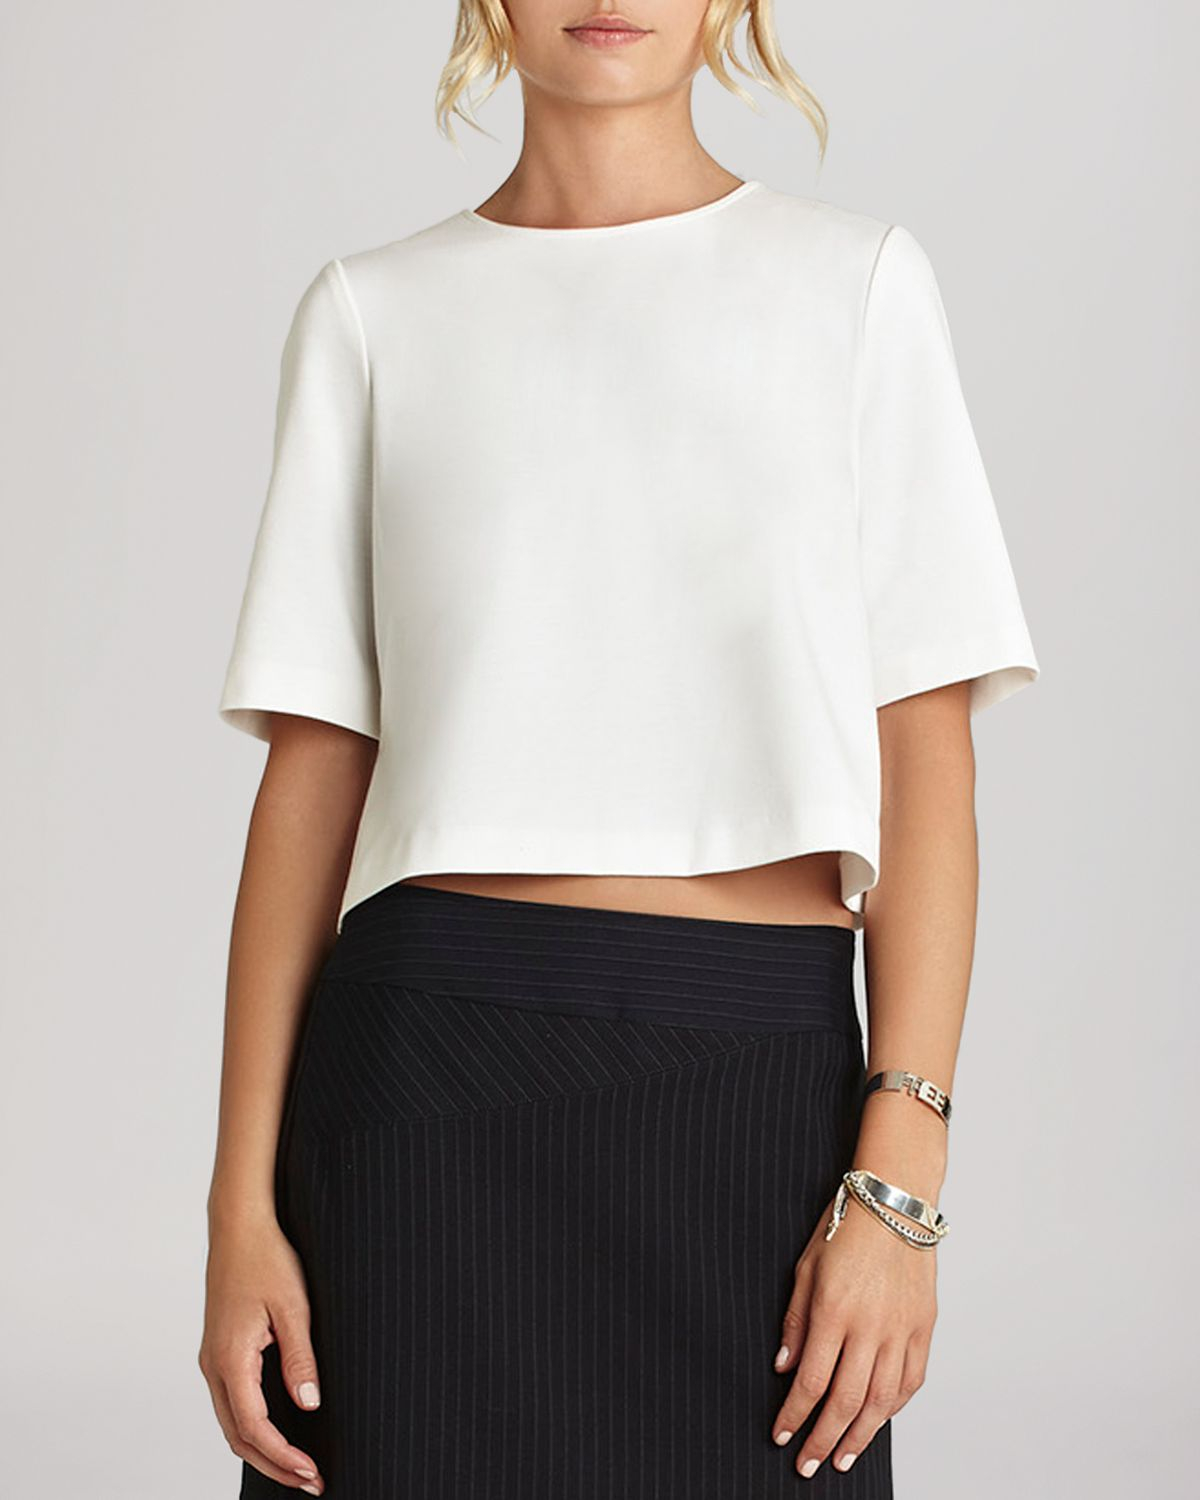 Lyst Bcbgeneration Boxy Crop Top In White